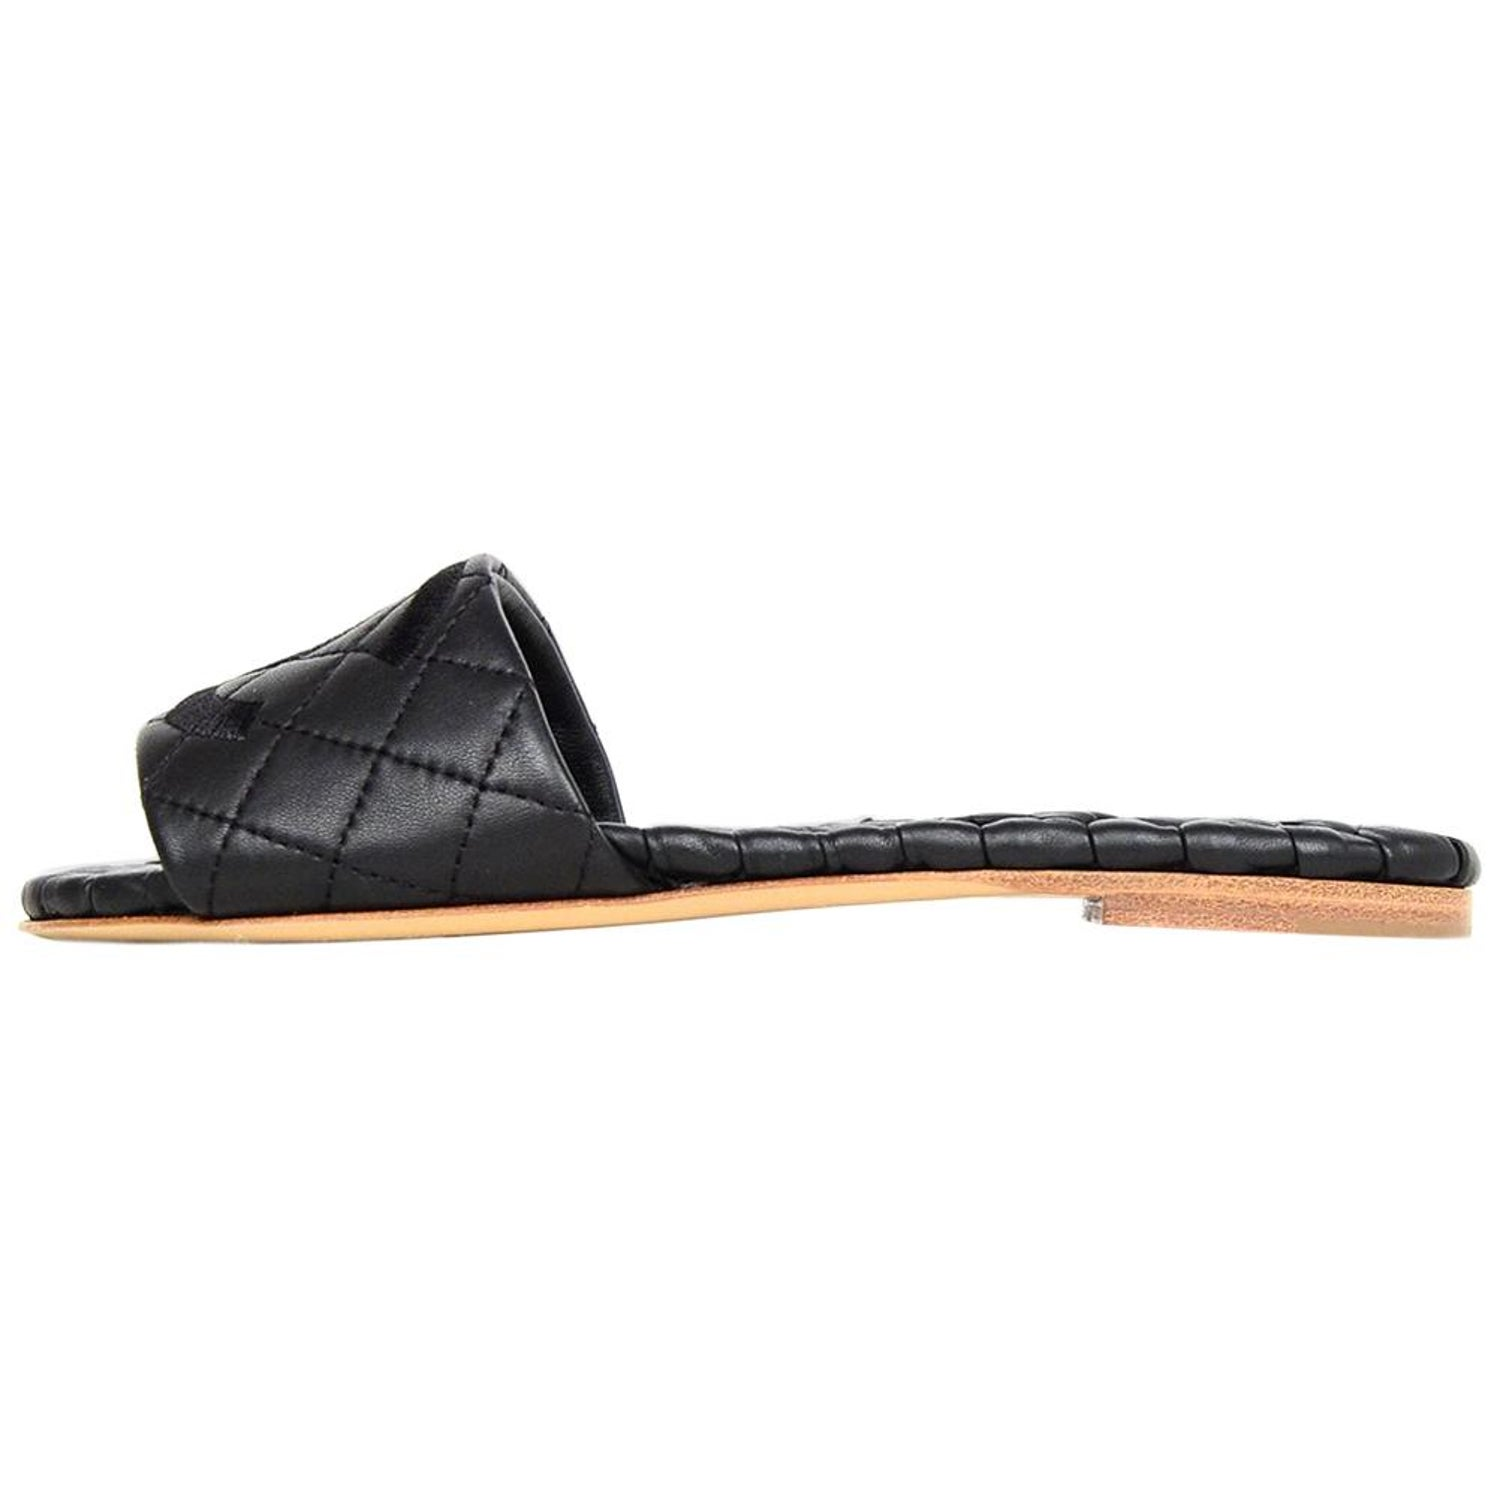 dc73c613e78 Chanel Black Leather Quilted Slipper Slide Sandals W  Embroidered CC Sz 36.5 C For Sale at 1stdibs